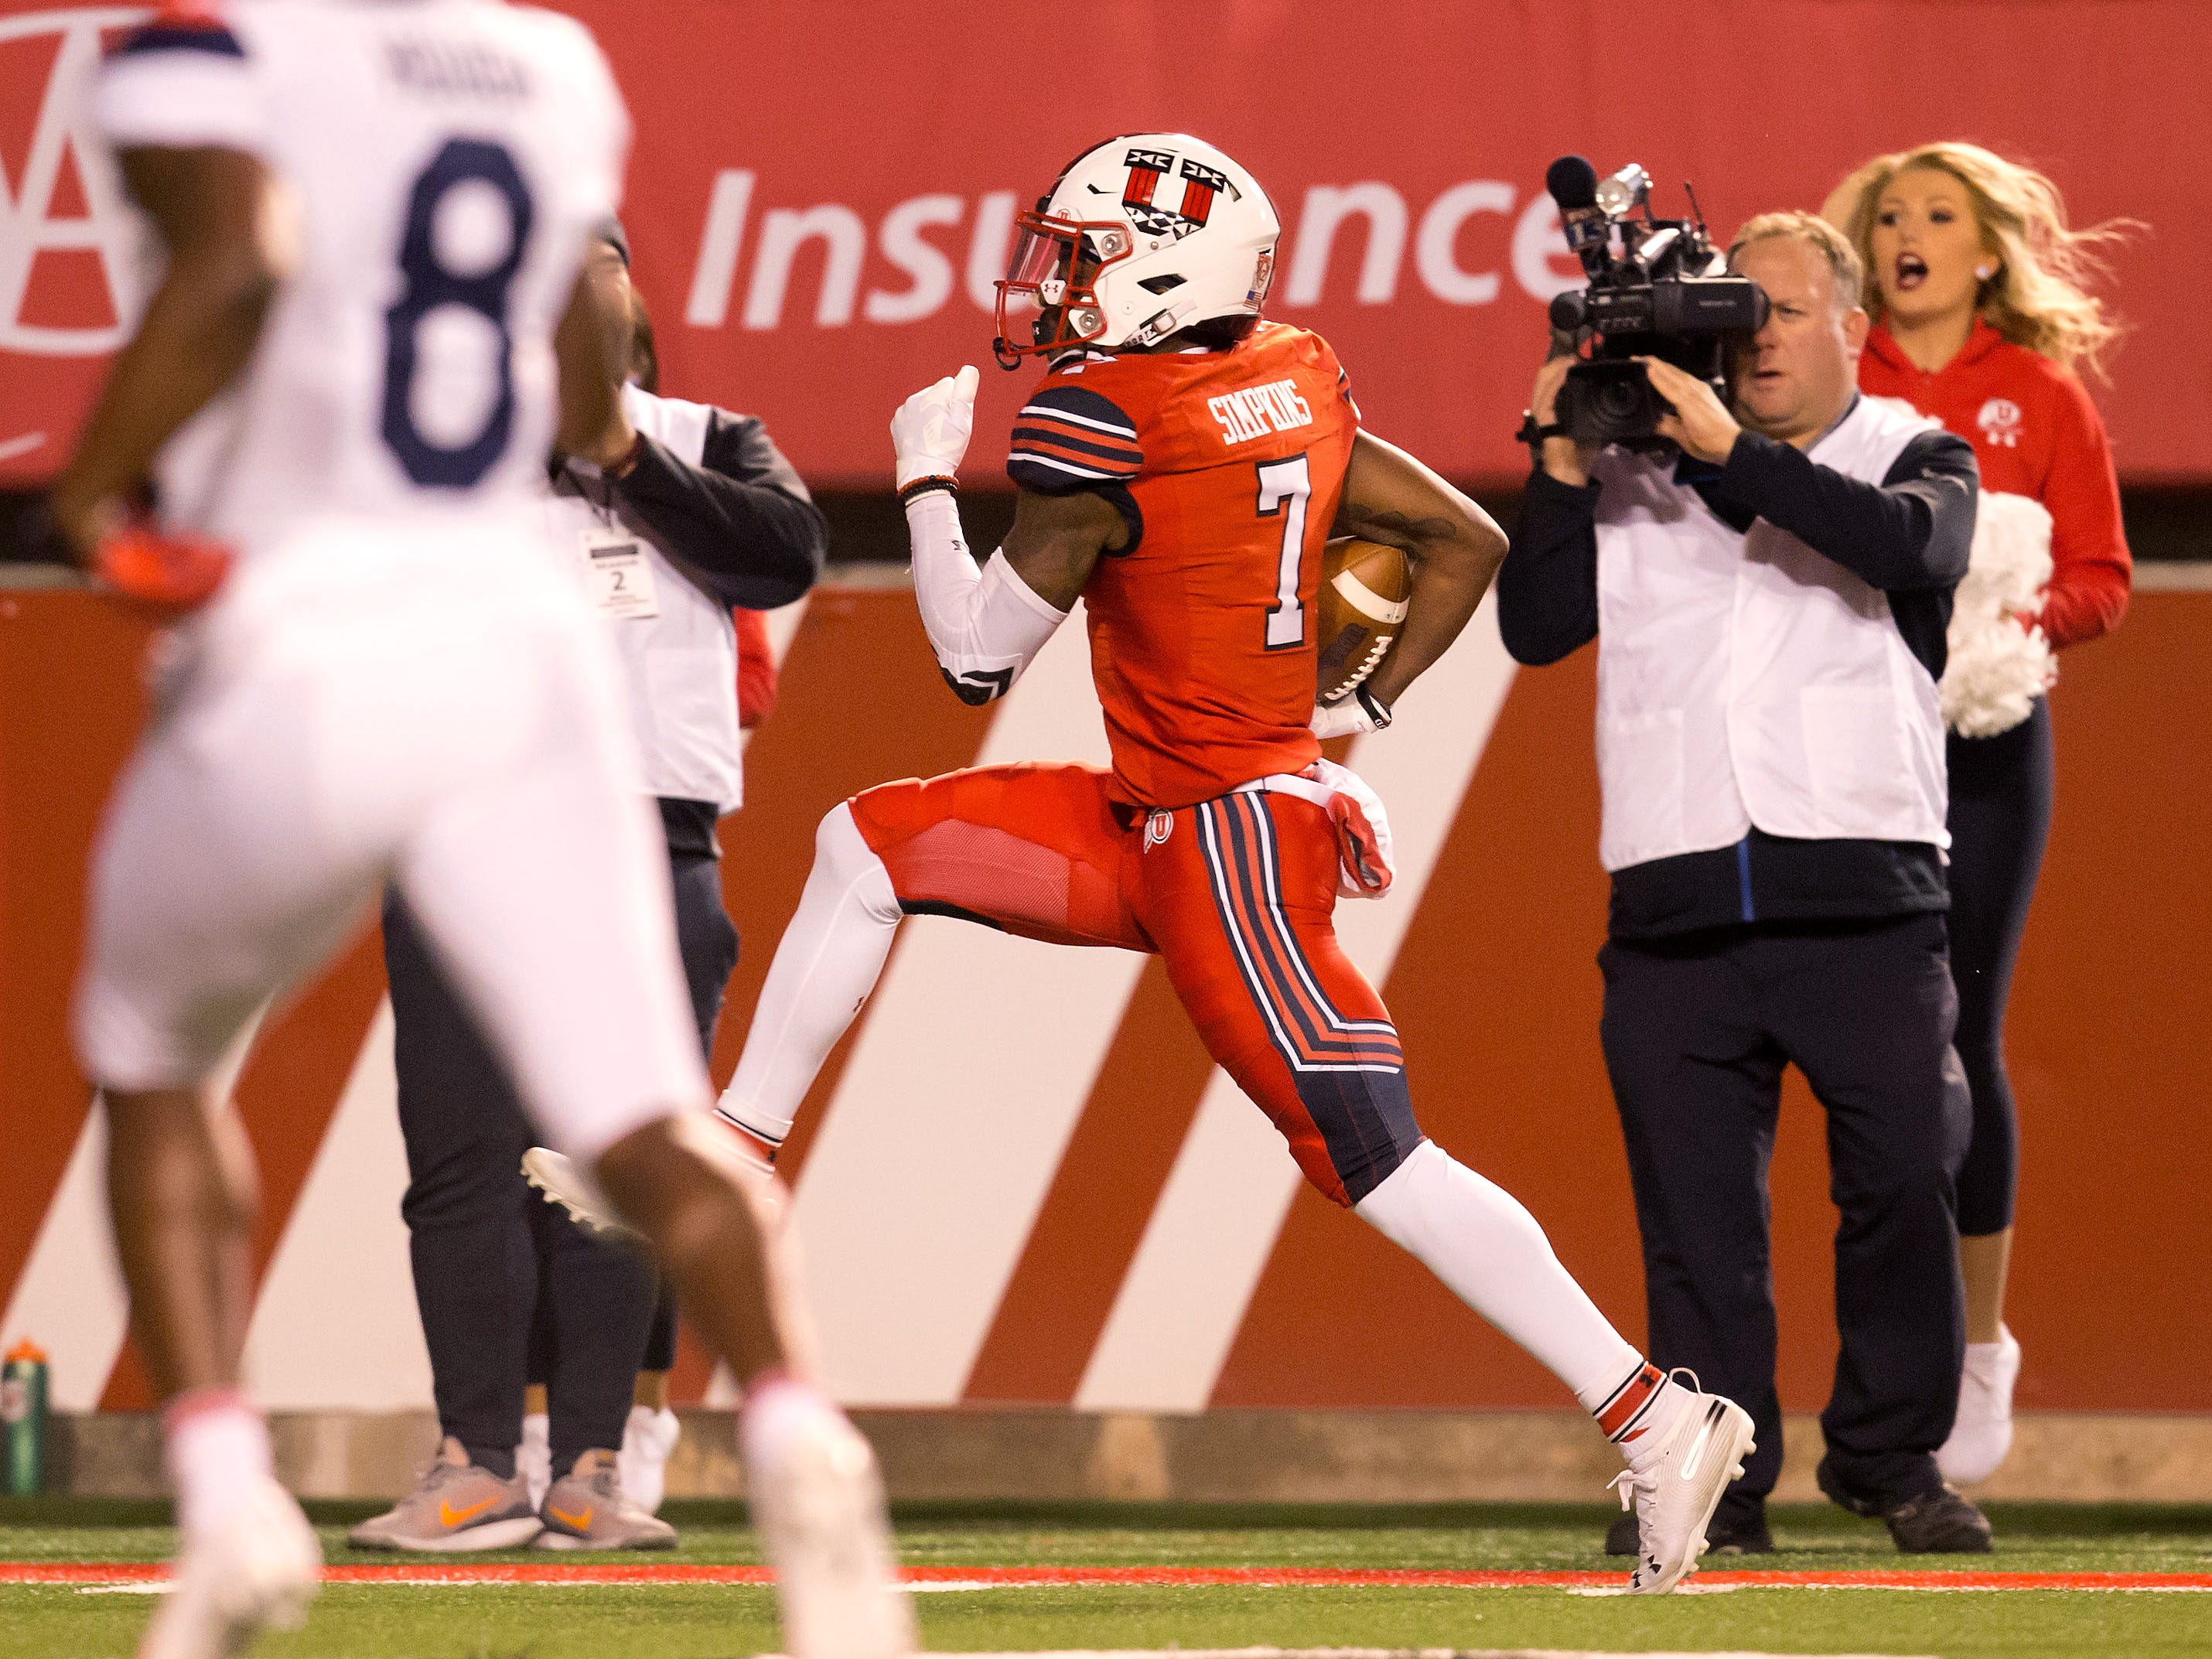 Oct 12, 2018; Salt Lake City, UT, USA; Utah Utes wide receiver Demari Simpkins (7) runs for a touchdown after a reception during the first half against the Arizona Wildcats at Rice-Eccles Stadium.